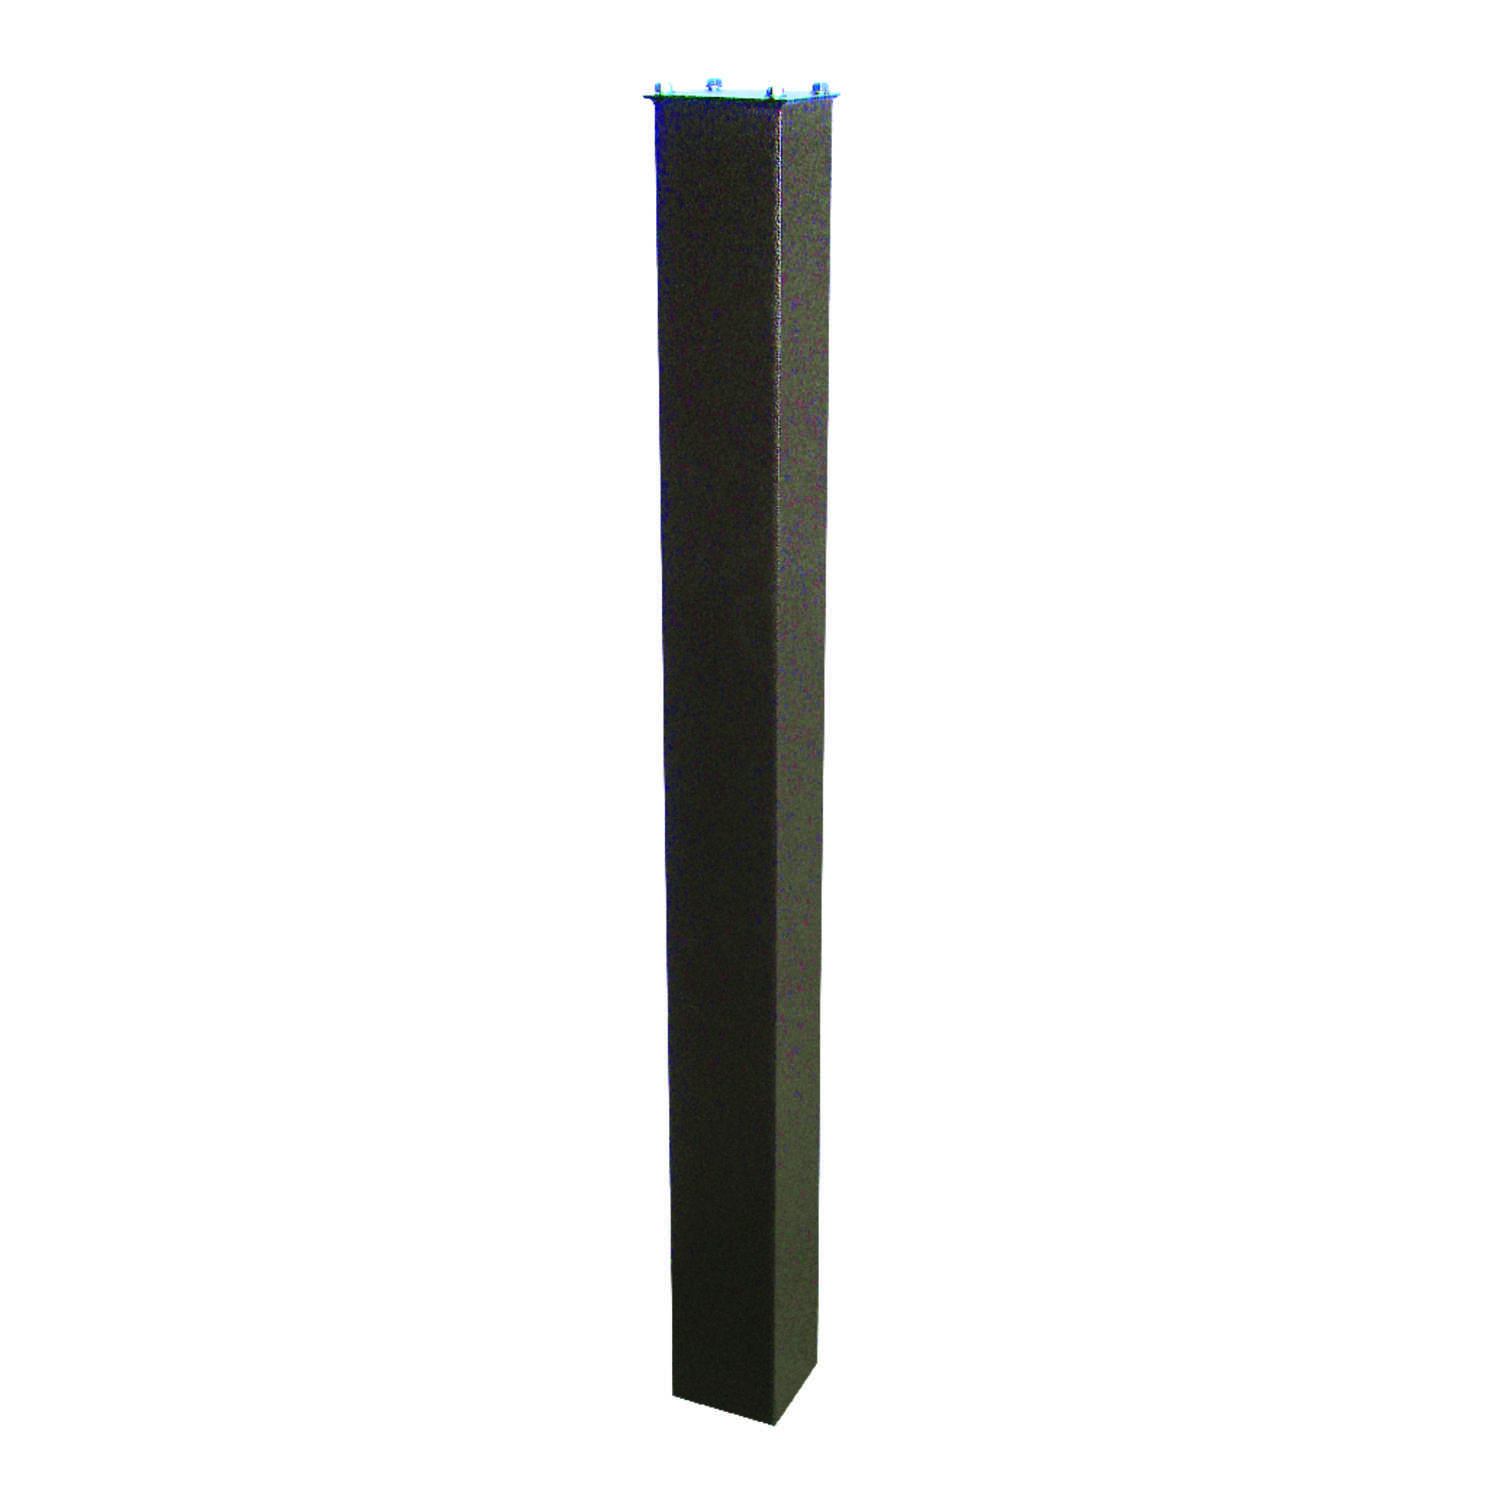 Mail Boss  4 in. H x 4 in. W x 43 in. D Powder Coated  Bronze  Steel  Mailbox Post